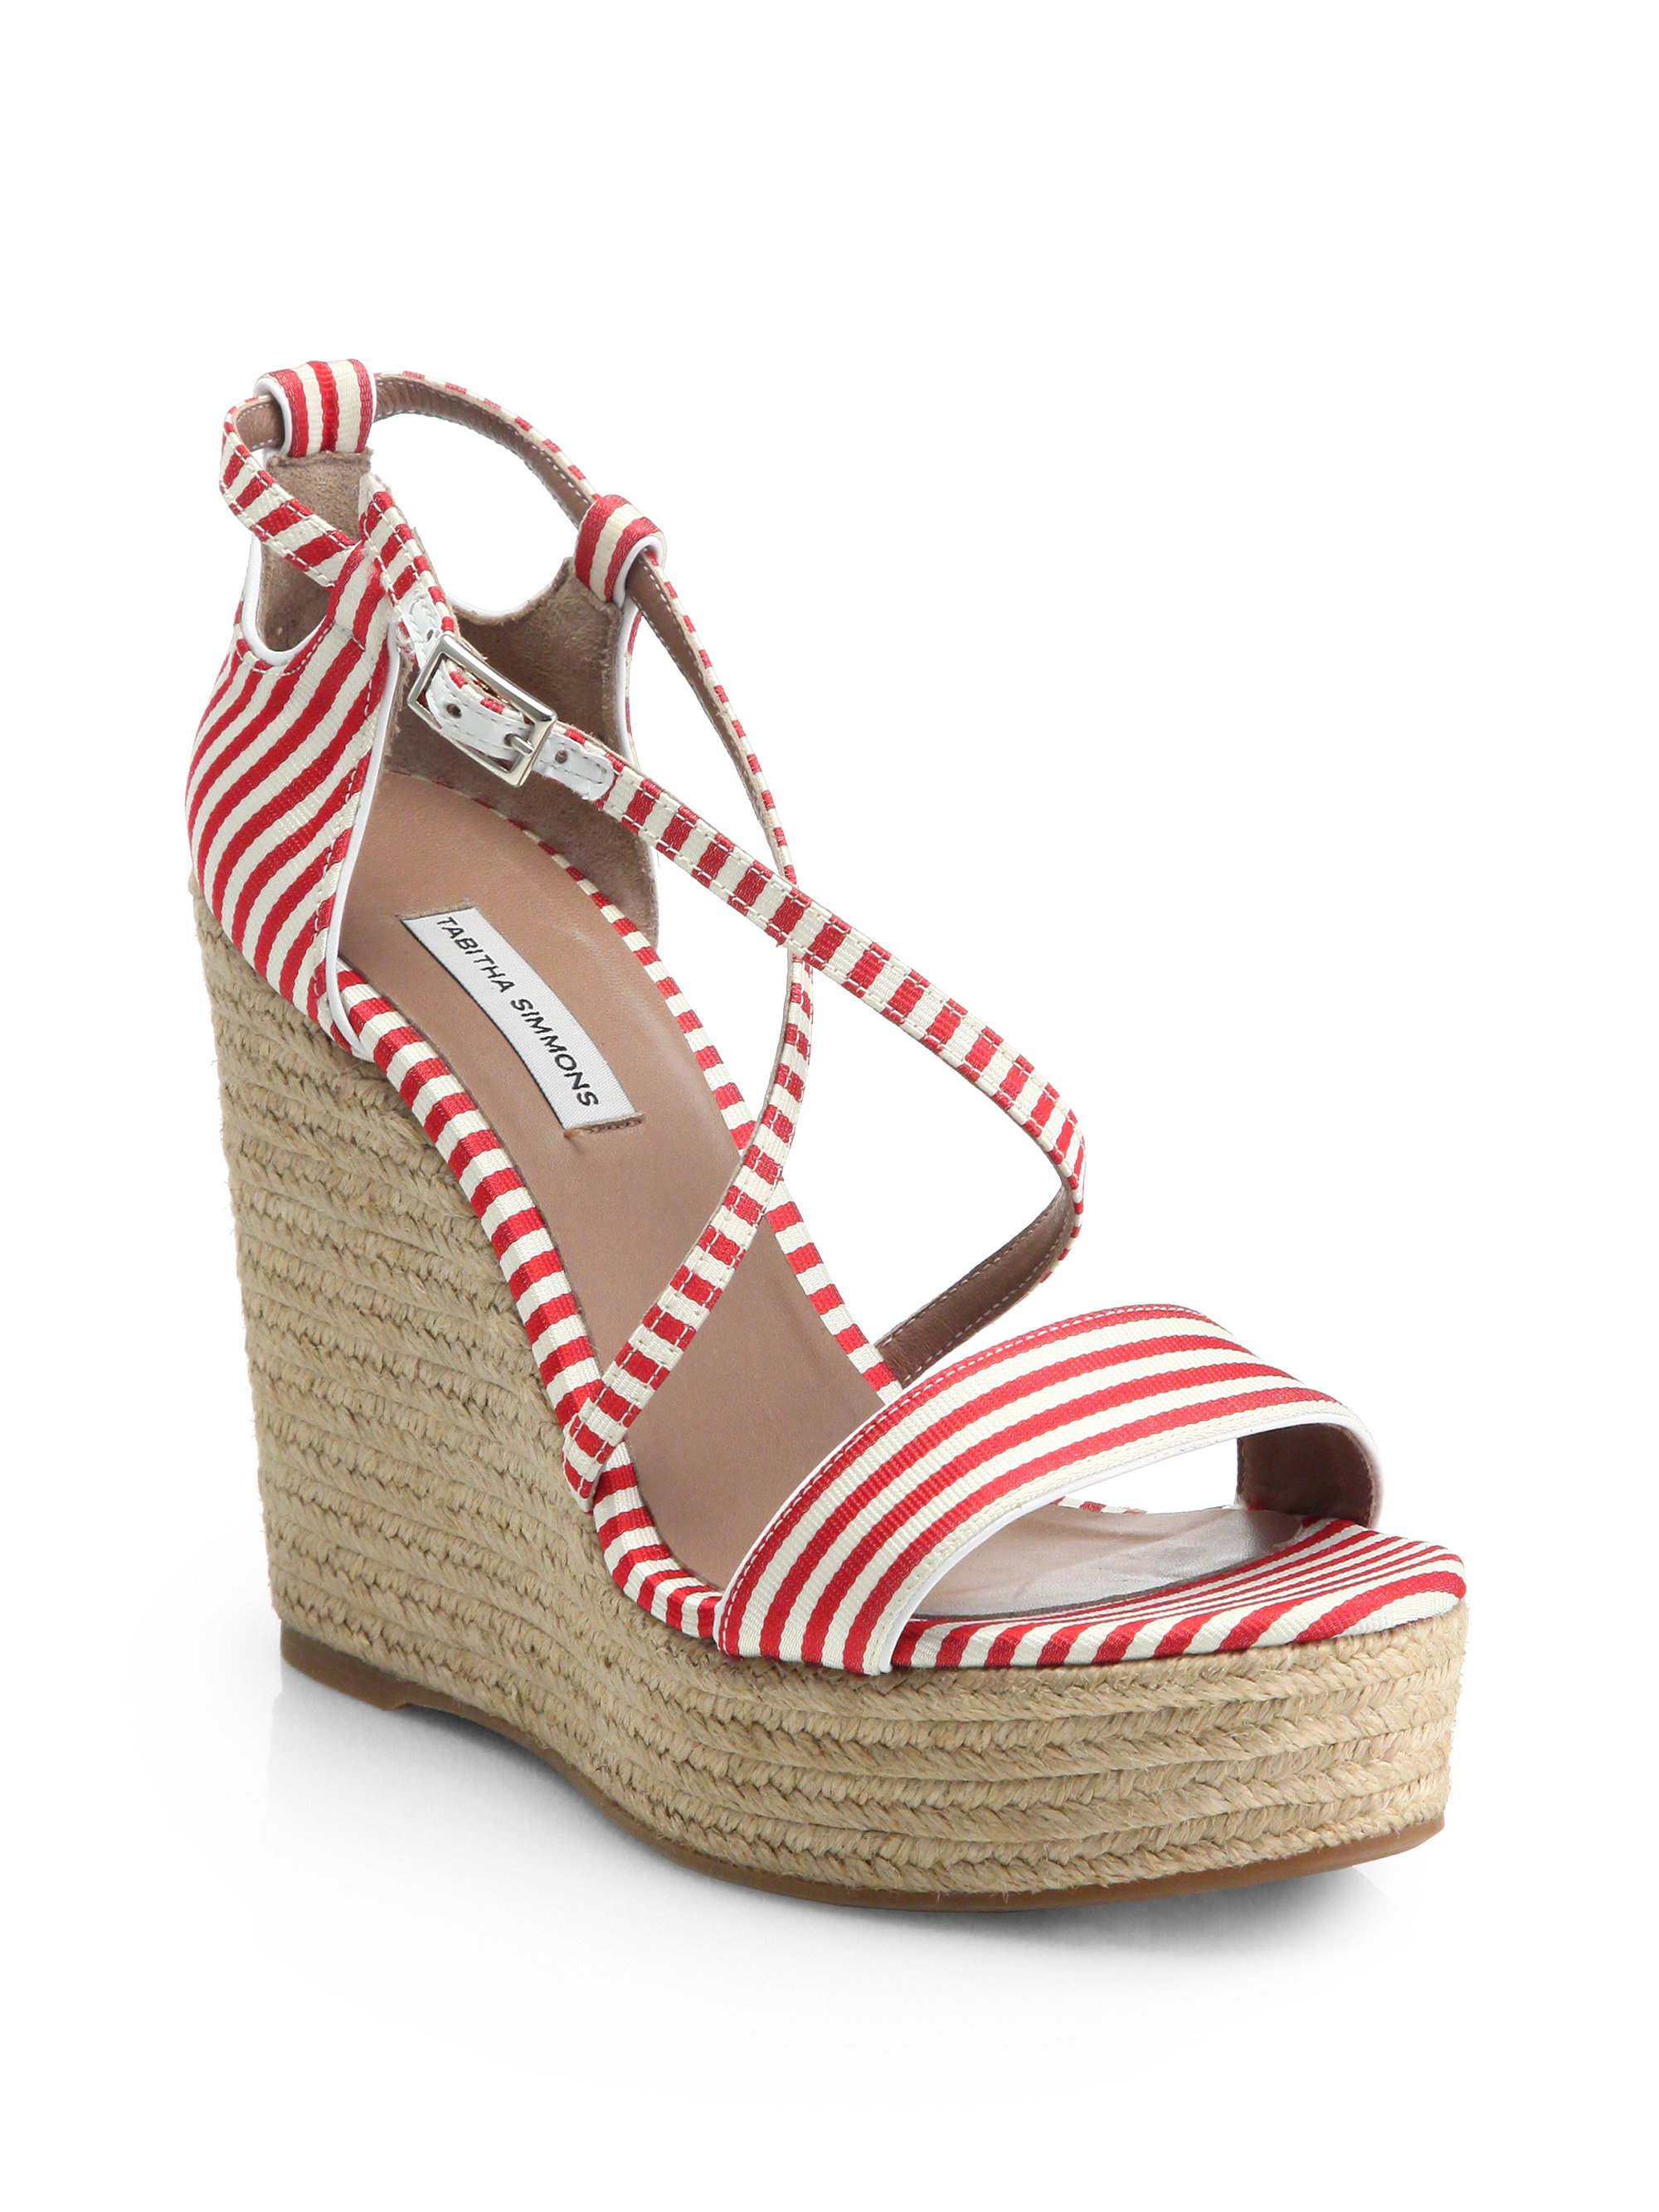 Lyst - Tabitha Simmons Jenny Striped Espadrille Wedge Sandals in Red